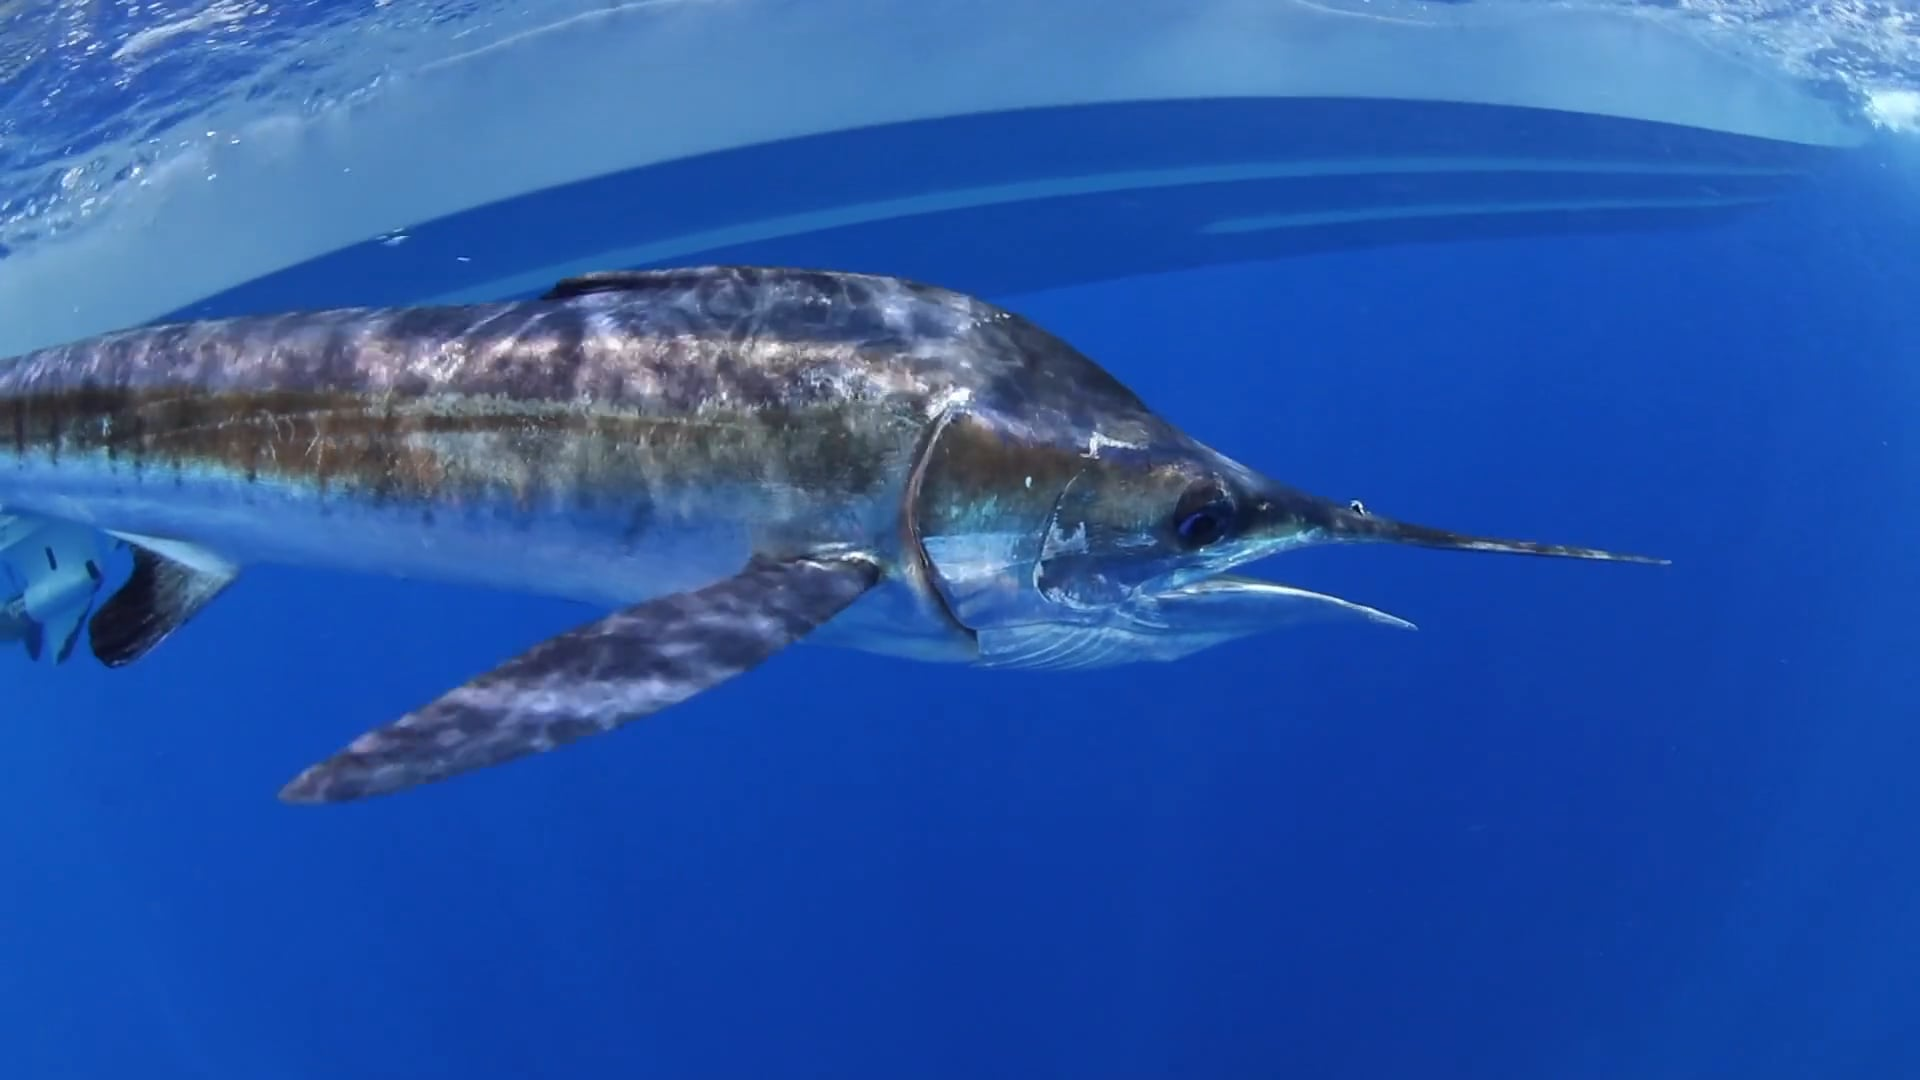 Closeup of marlin with underside of Pursuit boat in background.